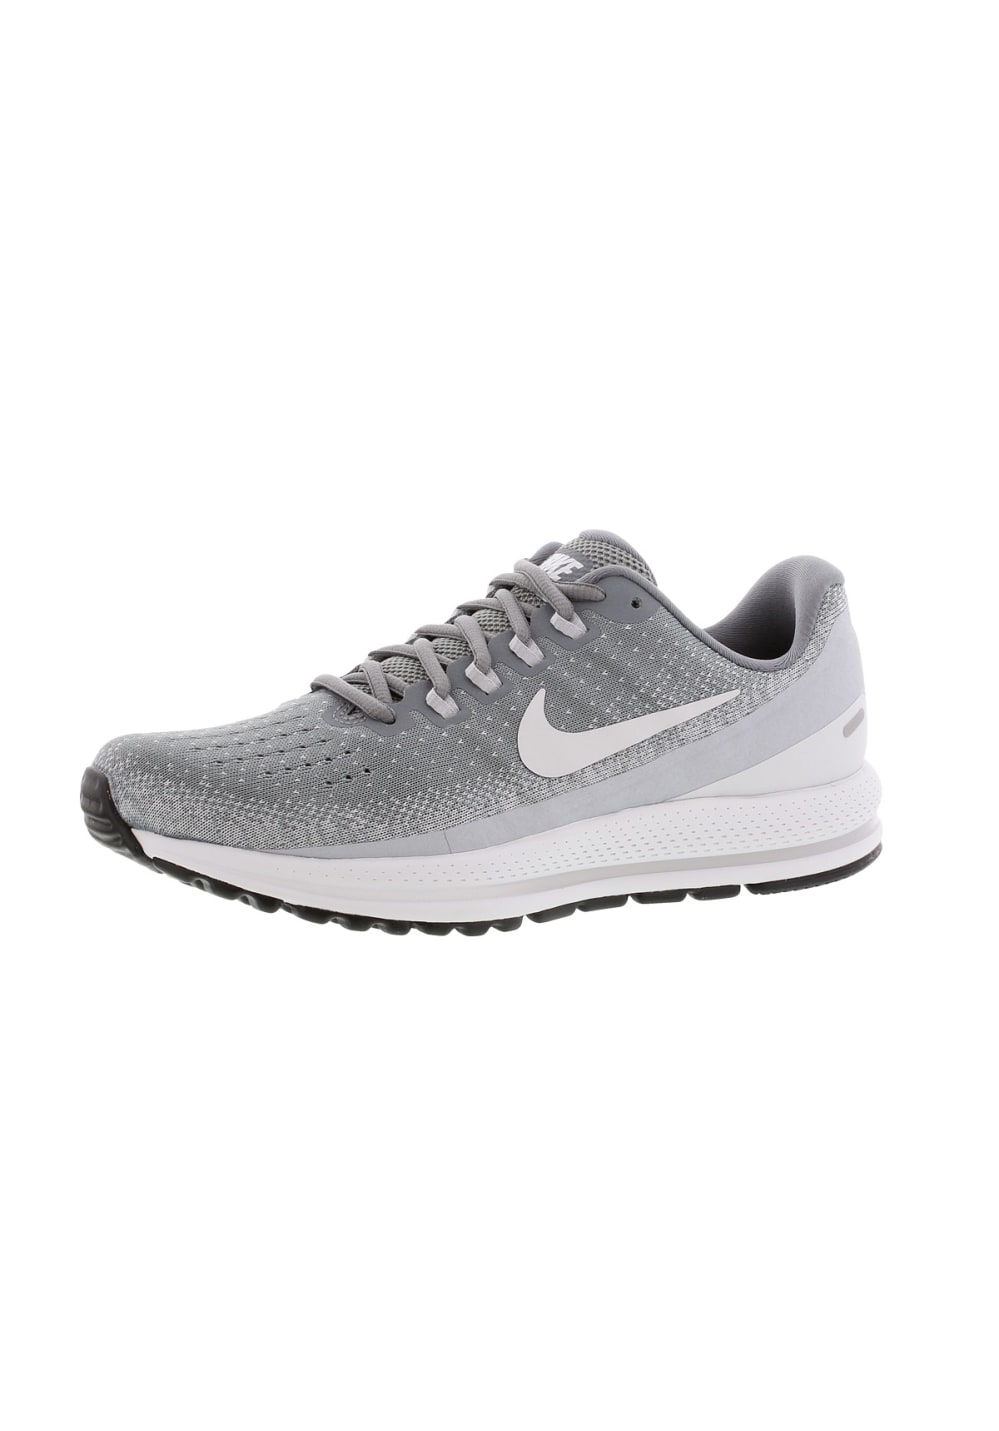 watch 8a560 f8f82 Nike Air Zoom Vomero 13 - Running shoes for Women - Grey